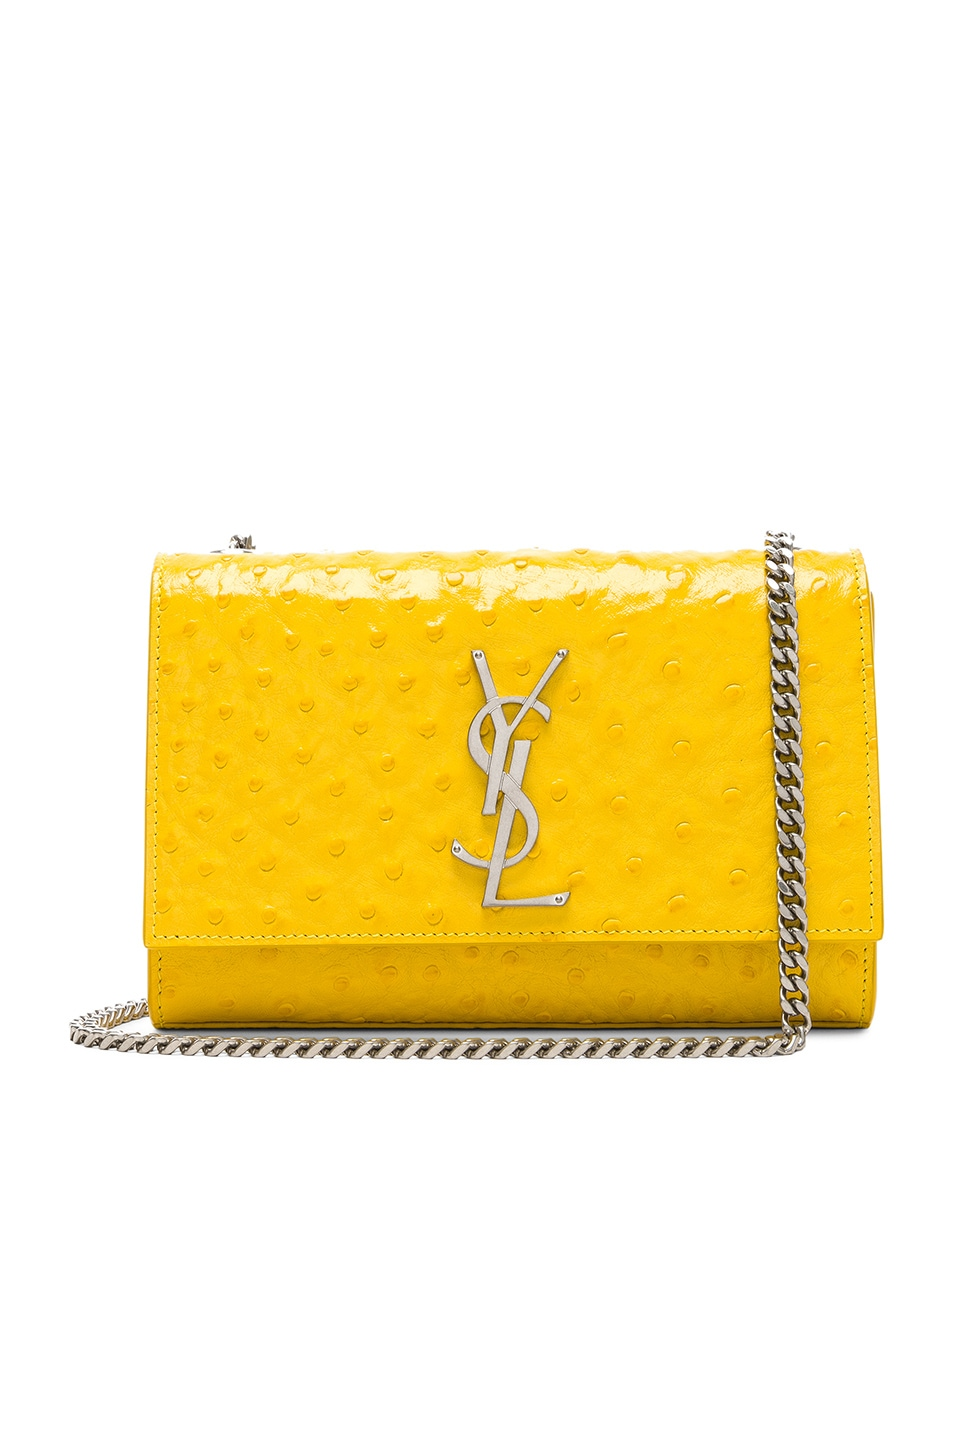 9a9a100501 Image 1 of Saint Laurent Small Ostrich Embossed Monogramme Kate Chain Bag  in Mimosa